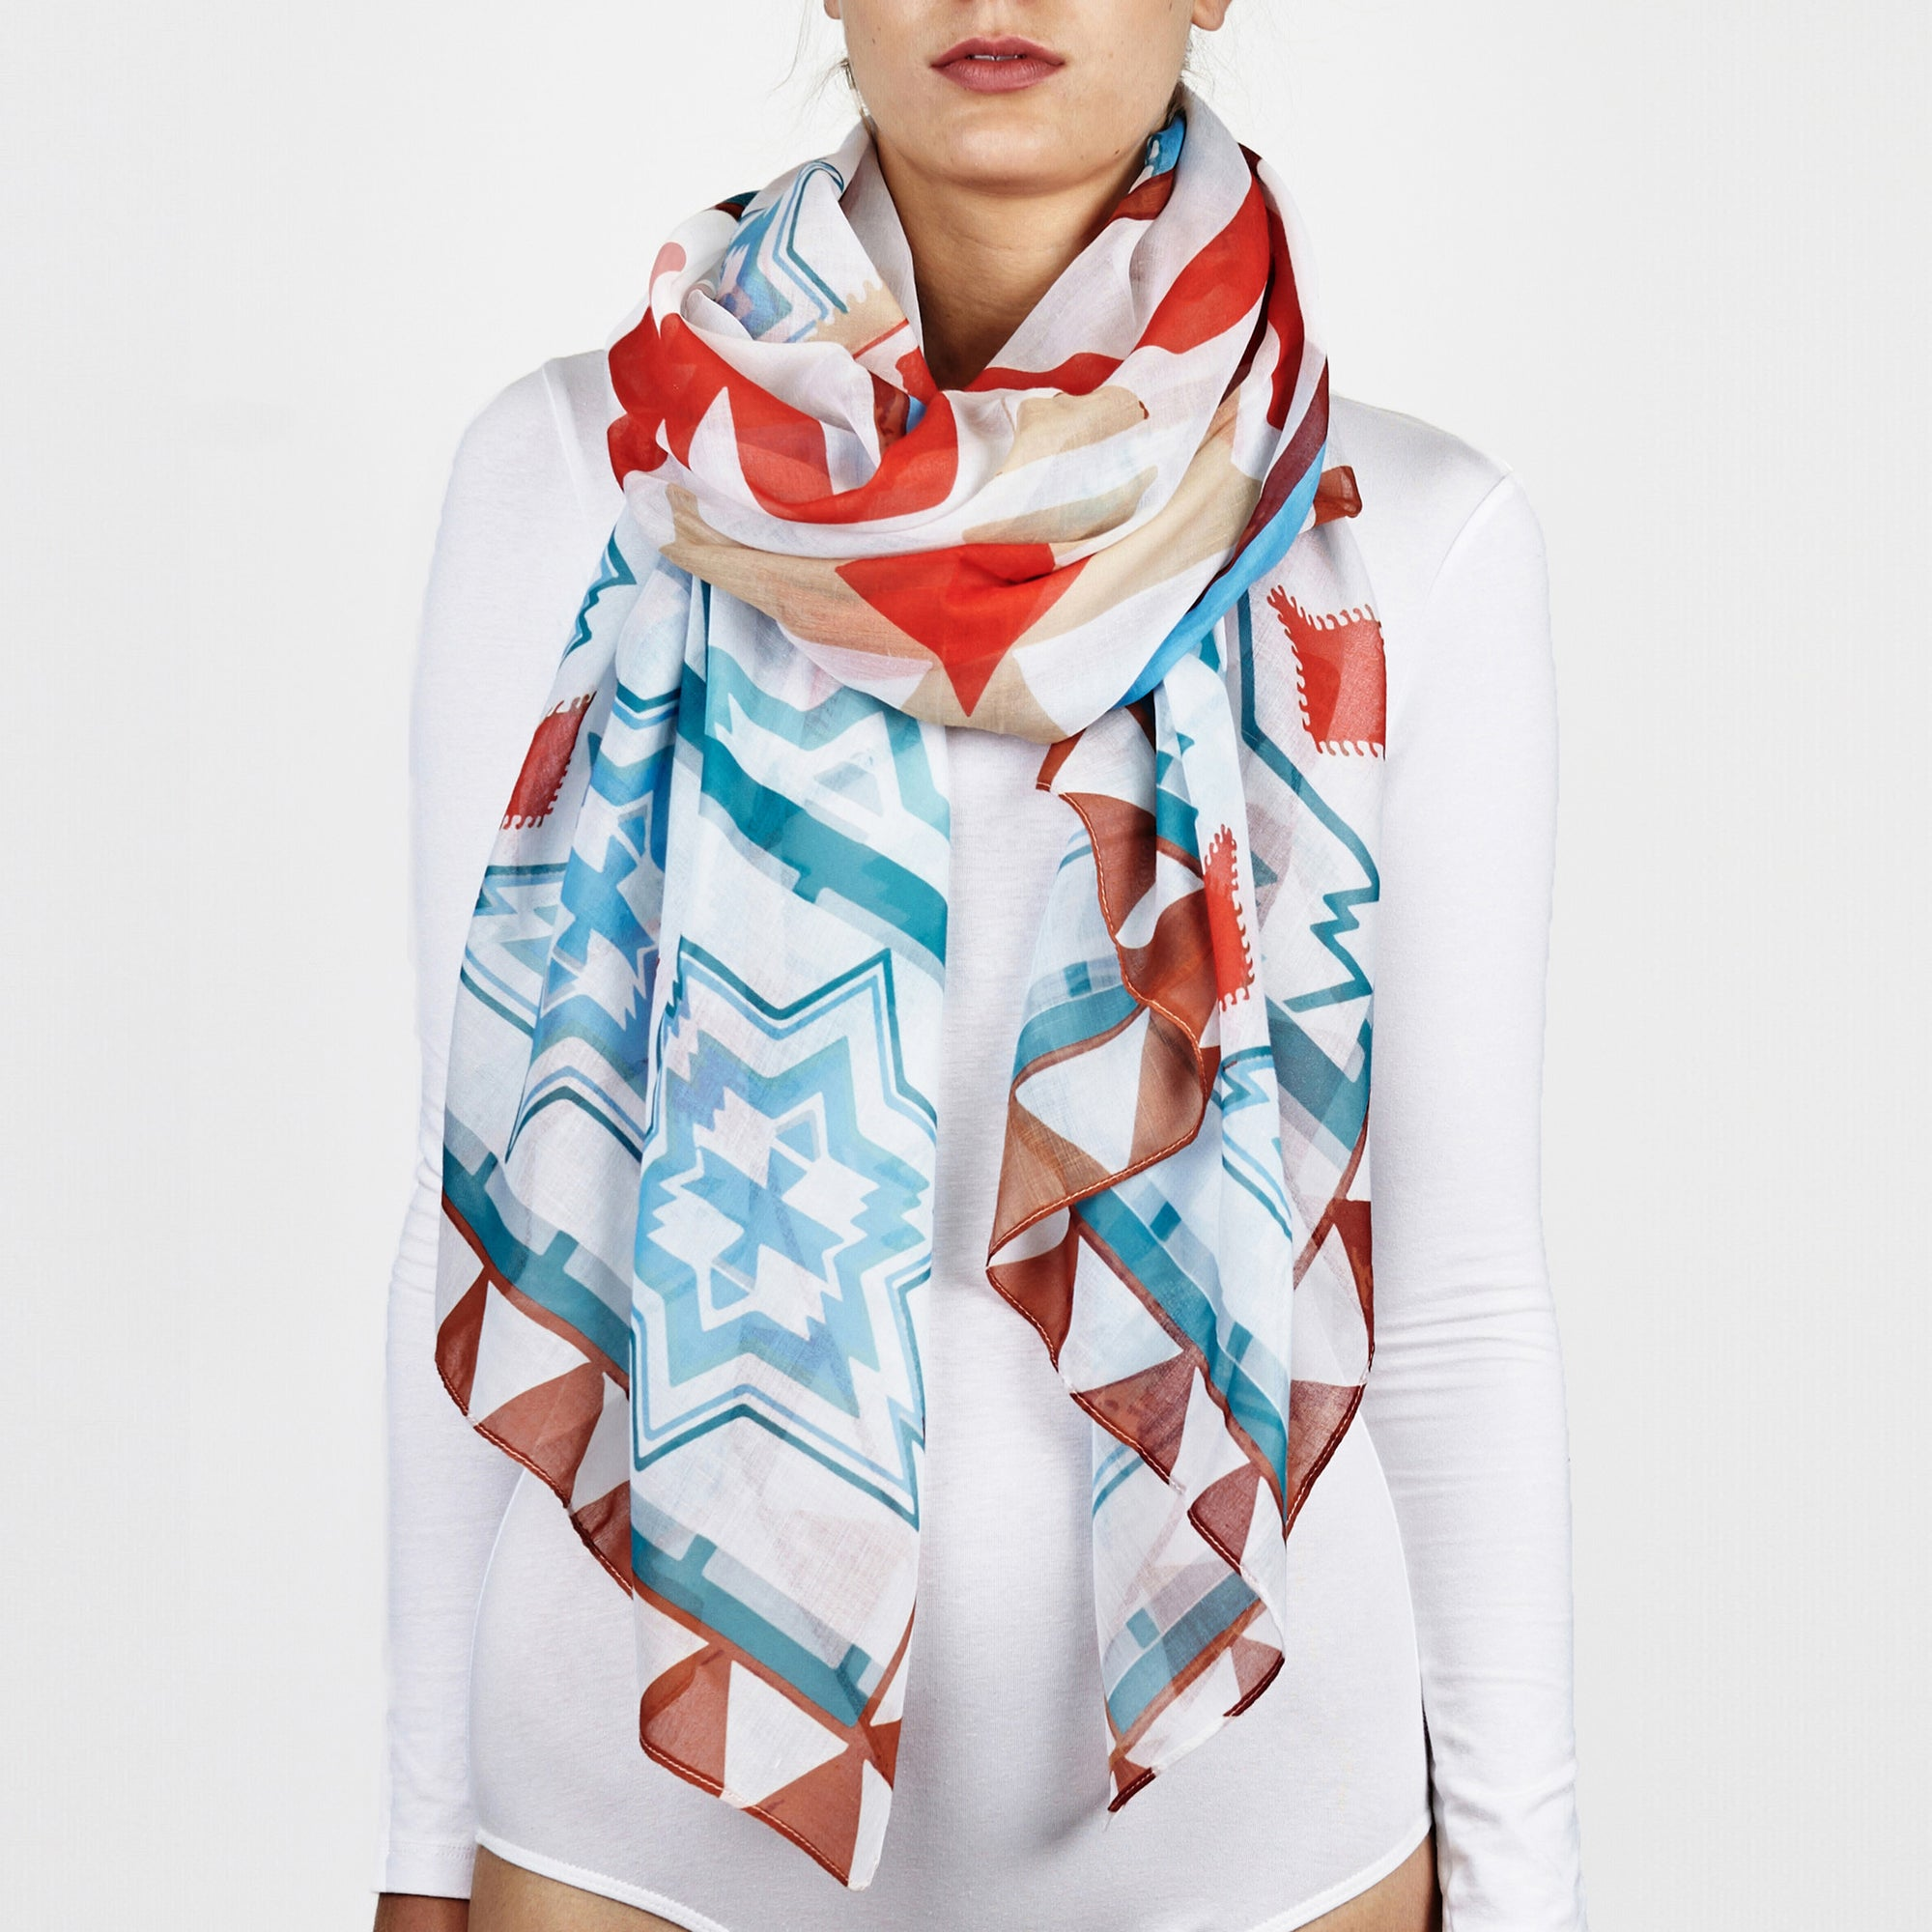 157b1d054e3a3 Printed Village Women's Scarf - Patterned - Light Blue - One Size ...